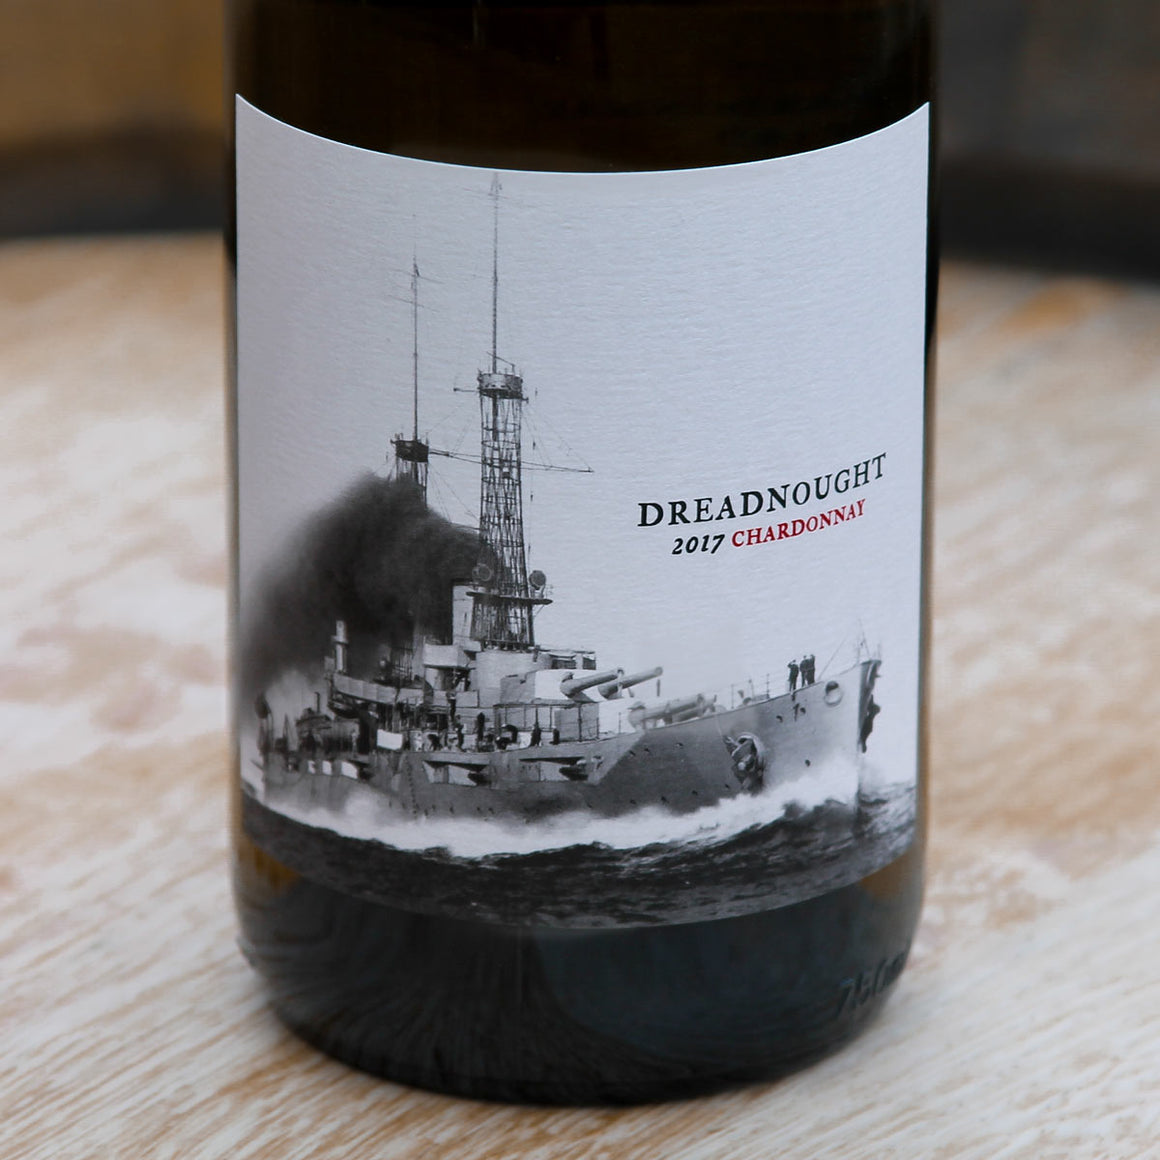 2017 Chardonnay | Dreadnought | Columbia River Gorge